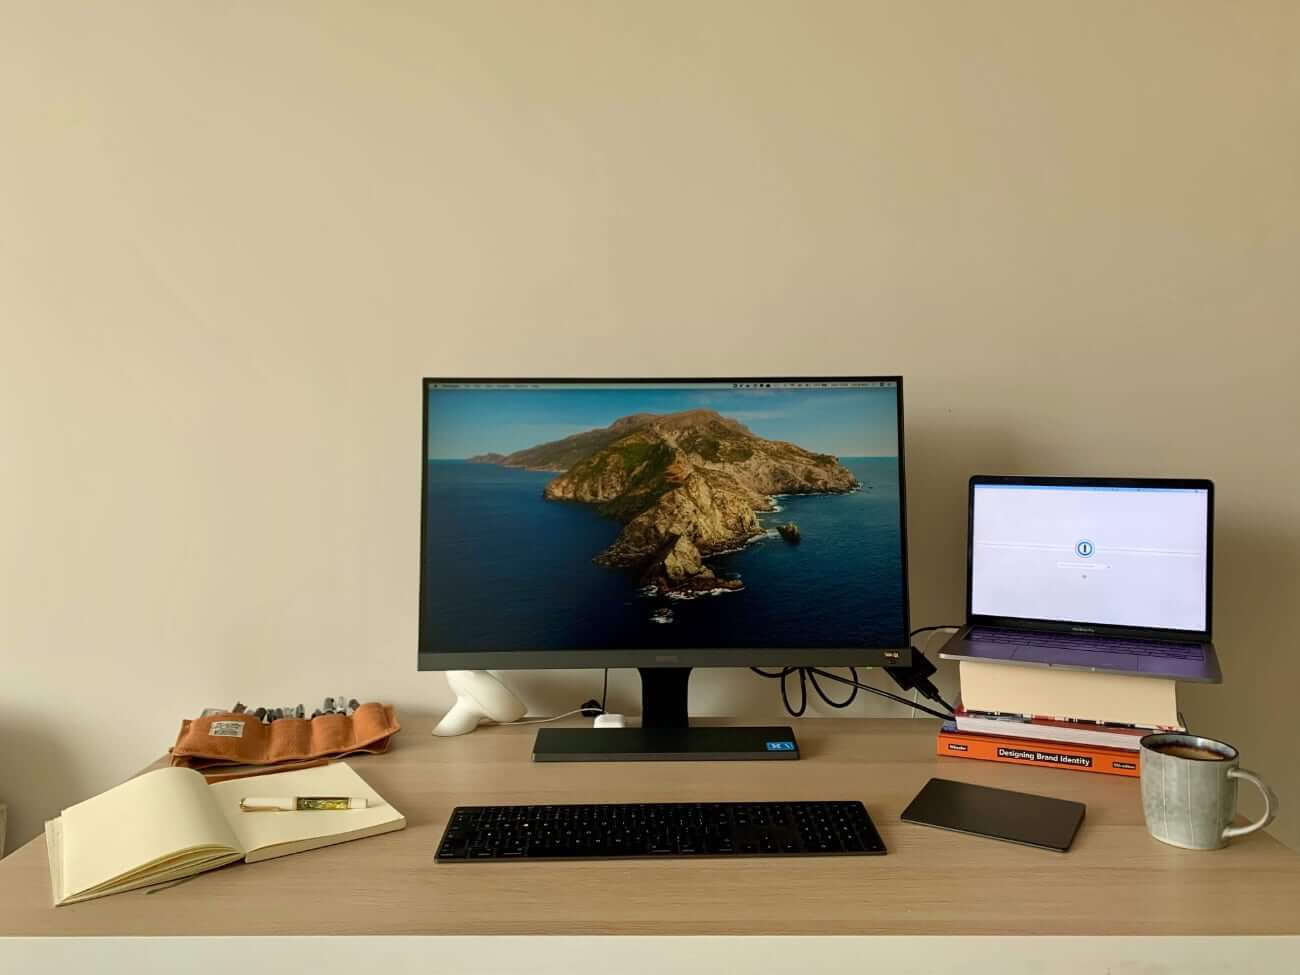 Image of Lily's work from home setup